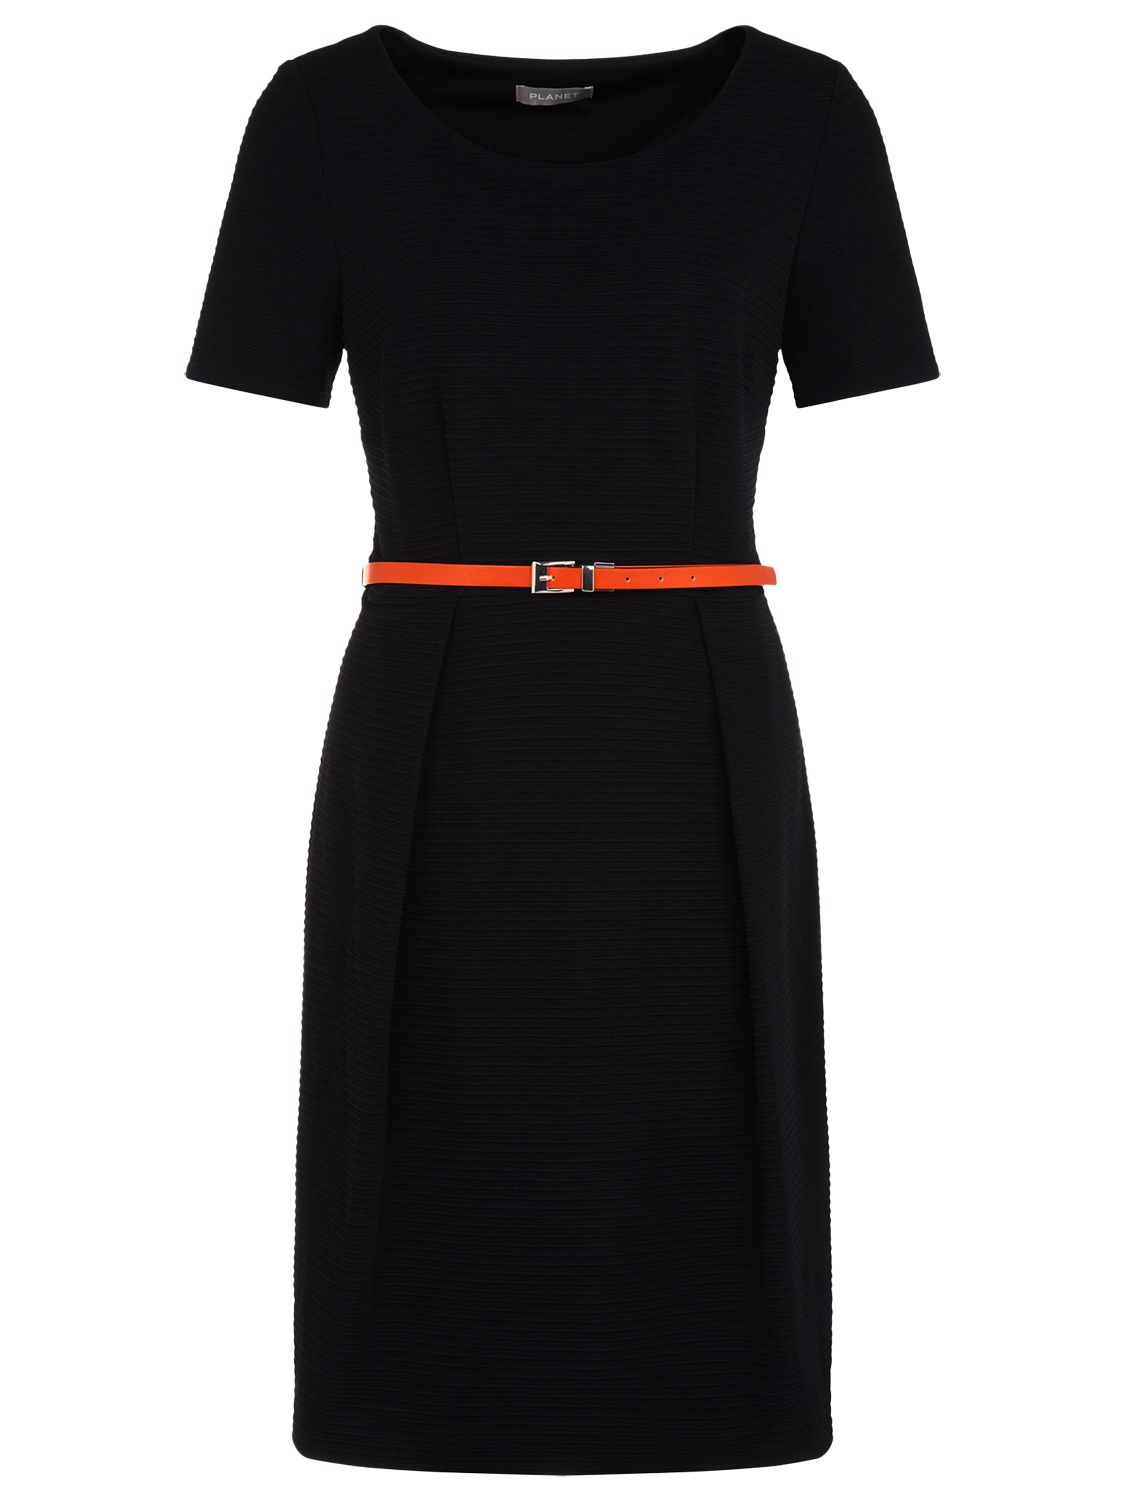 planet rib detail belted dress black, planet, rib, detail, belted, dress, black, 10|16|18|12|14|8|20, women, plus size, womens dresses, special offers, womenswear offers, latest reductions, womens dresses offers, 1831317